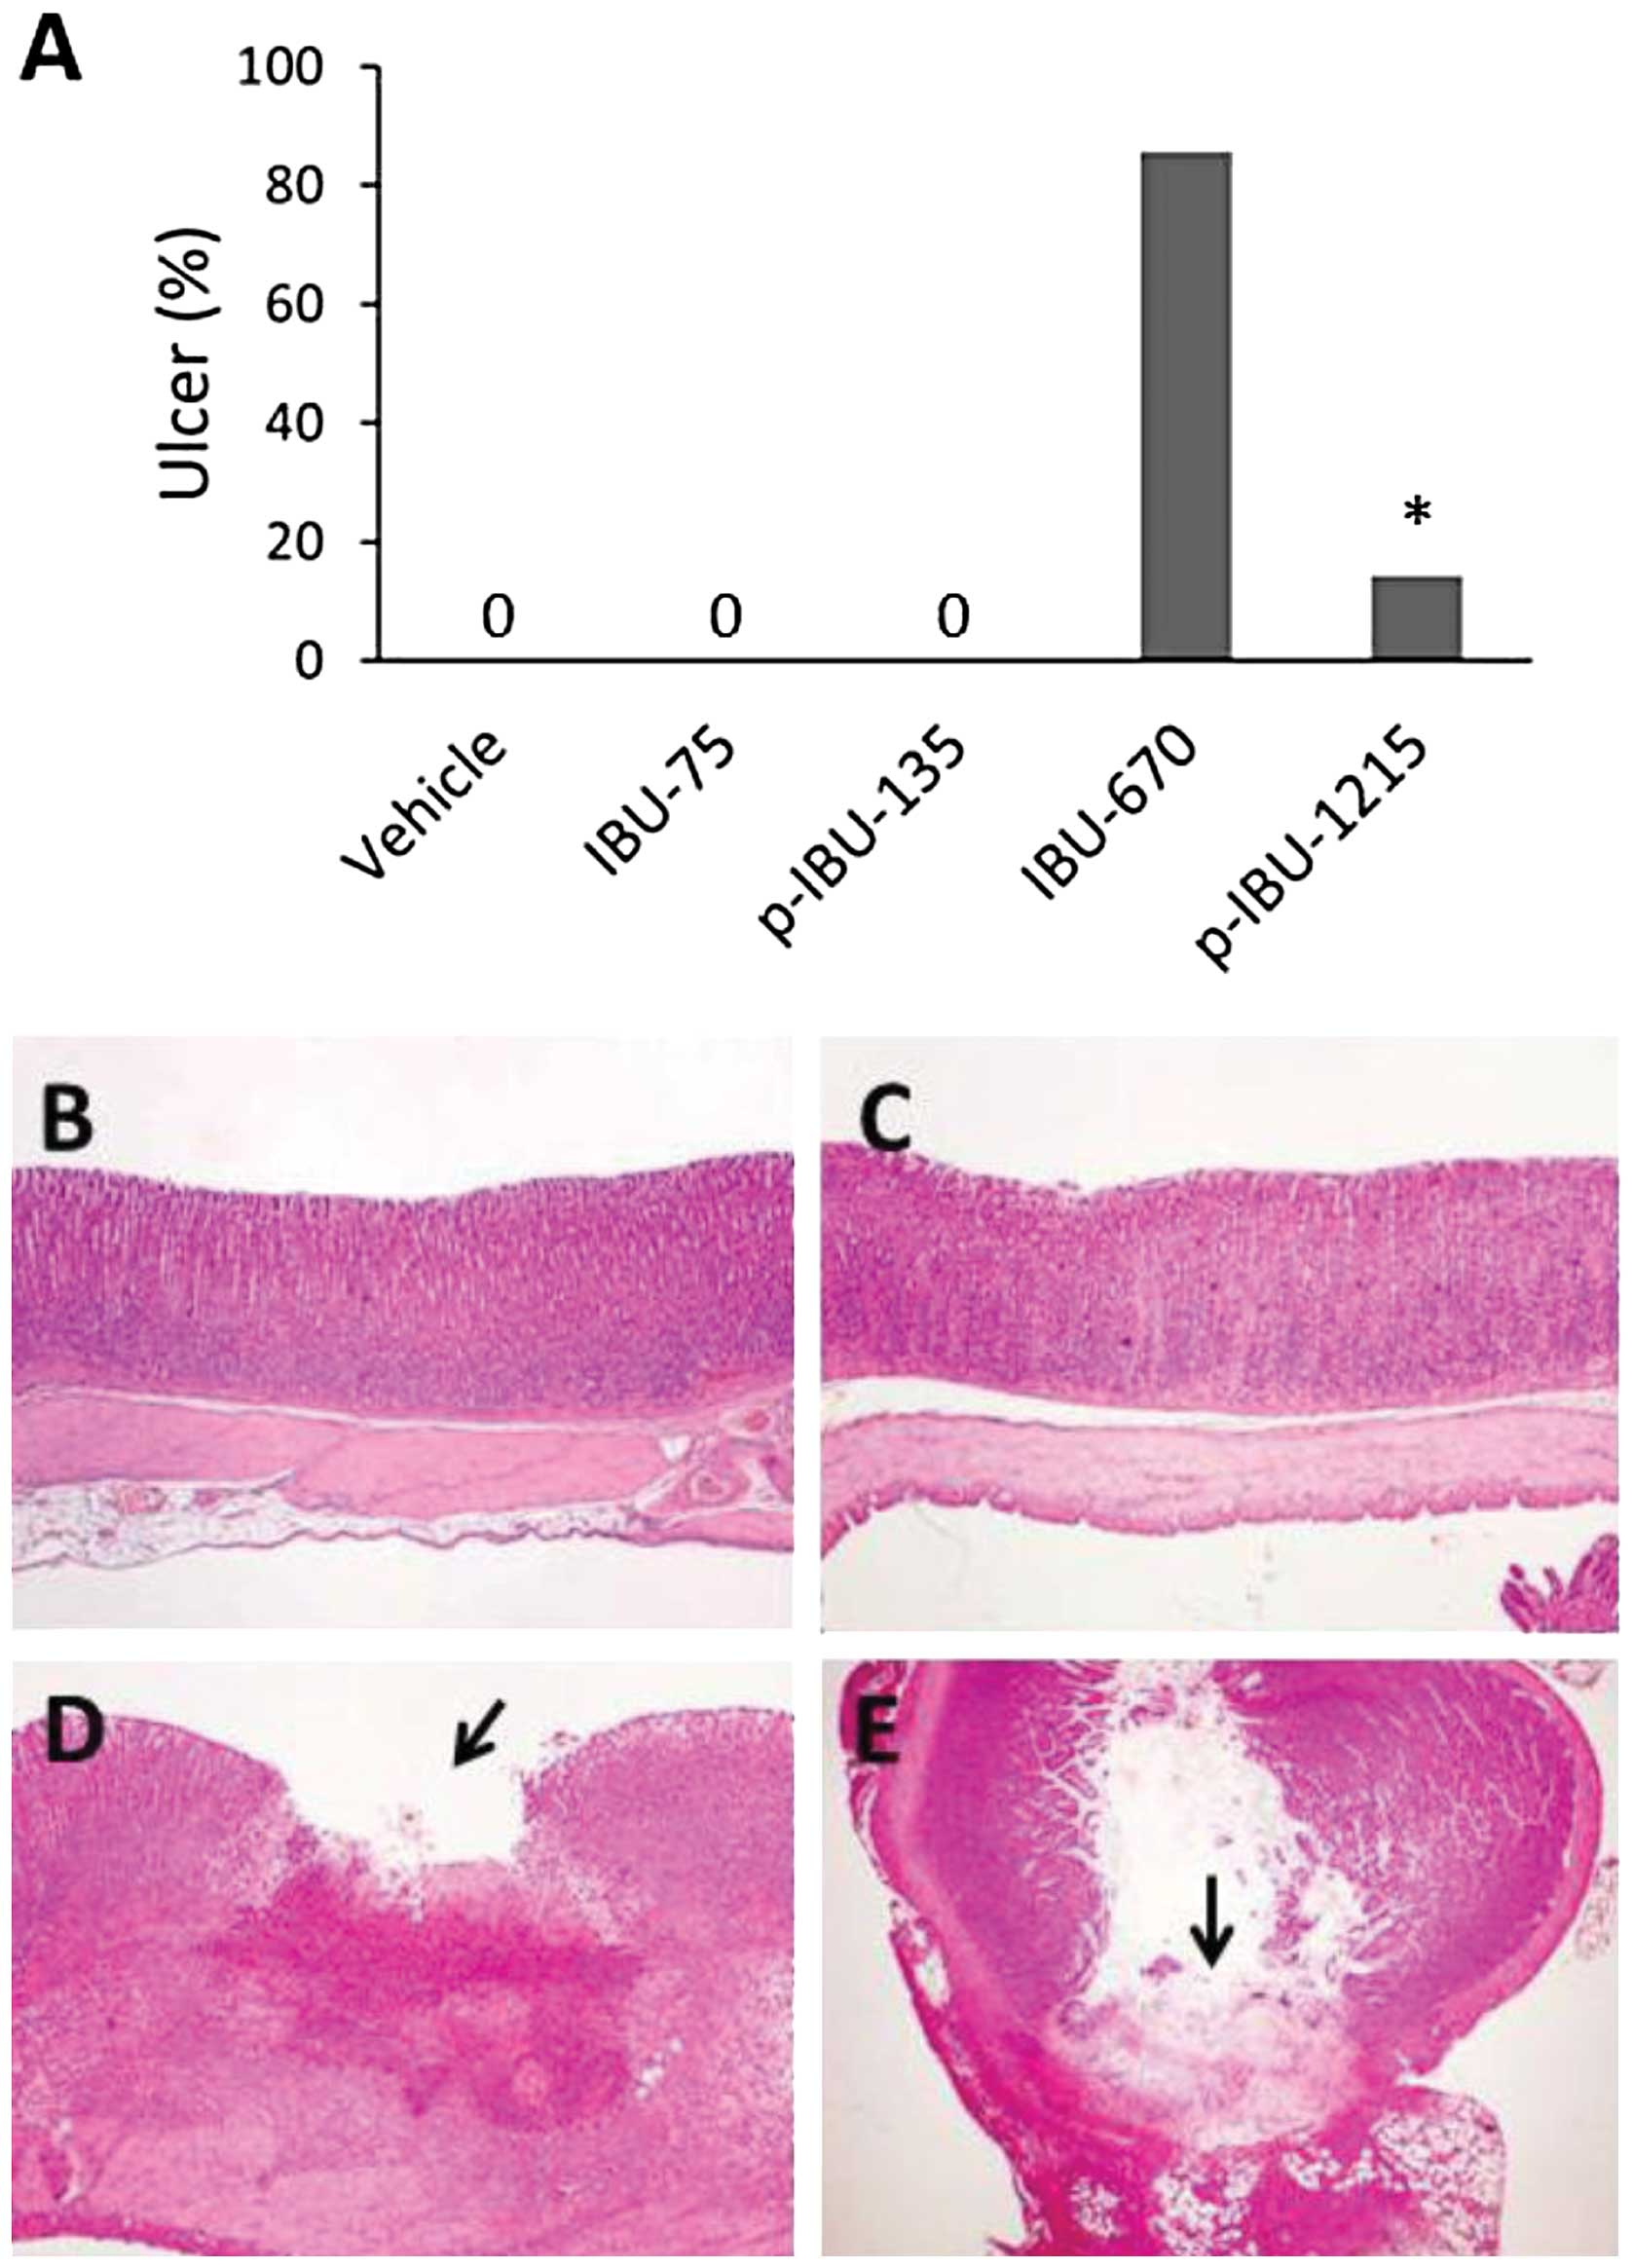 A Novel Nsaid Derivative Phospho Ibuprofen Prevents Aom Induced Colon Cancer In Rats